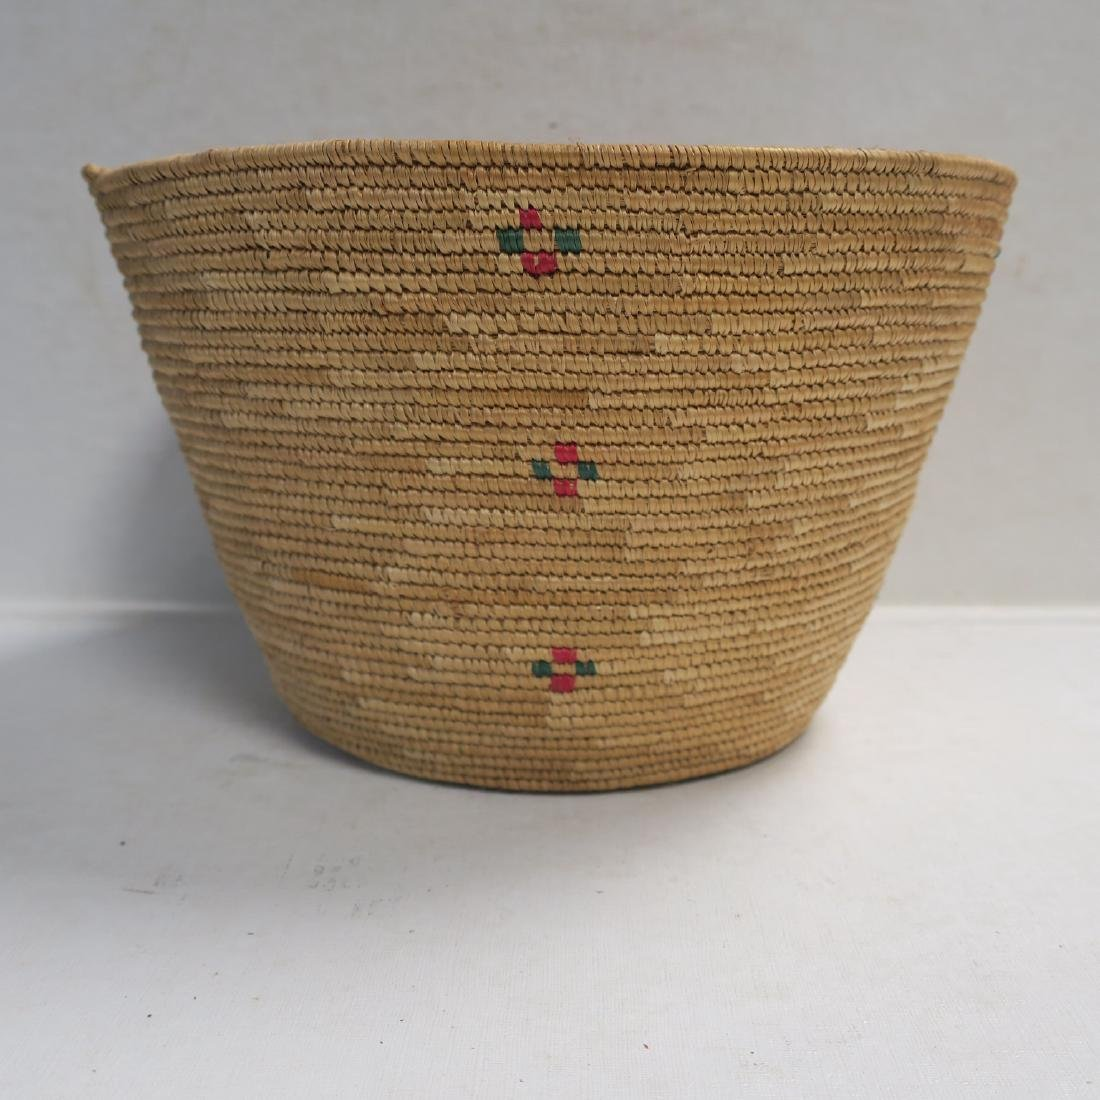 California Coiled Woven Bowl with Polychrome Crosses: